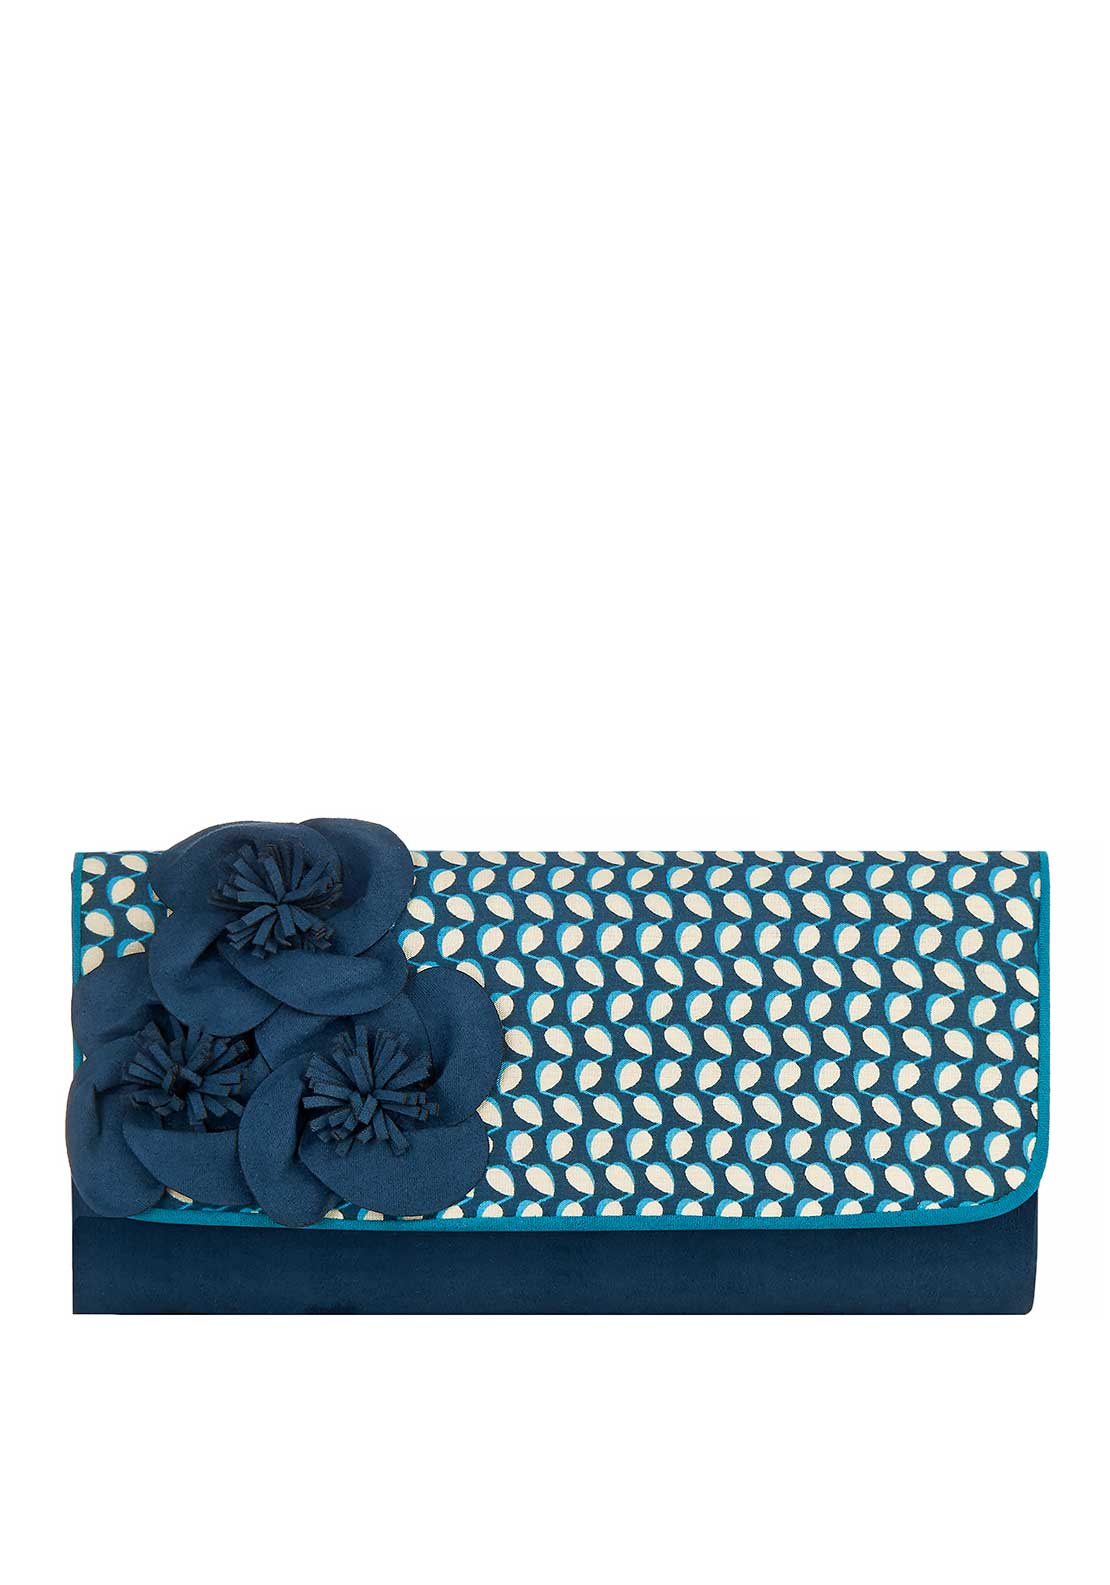 Ruby Shoo Milan Printed Flower Clutch Bag, Blue Floral